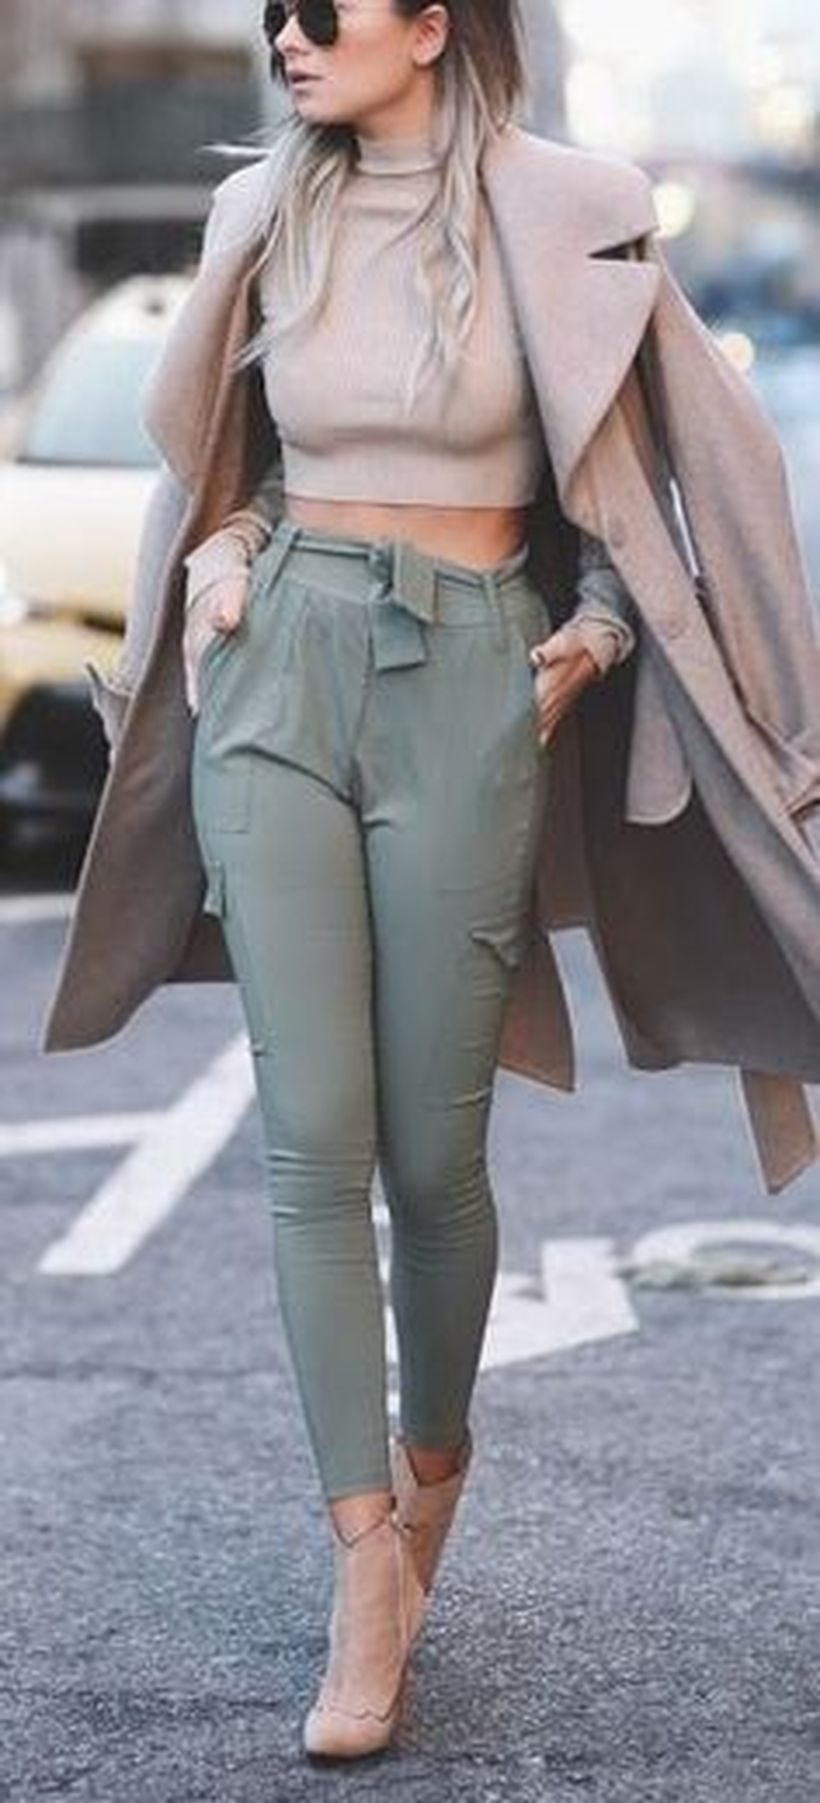 Inspiring simple casual street style outfits ideas 5